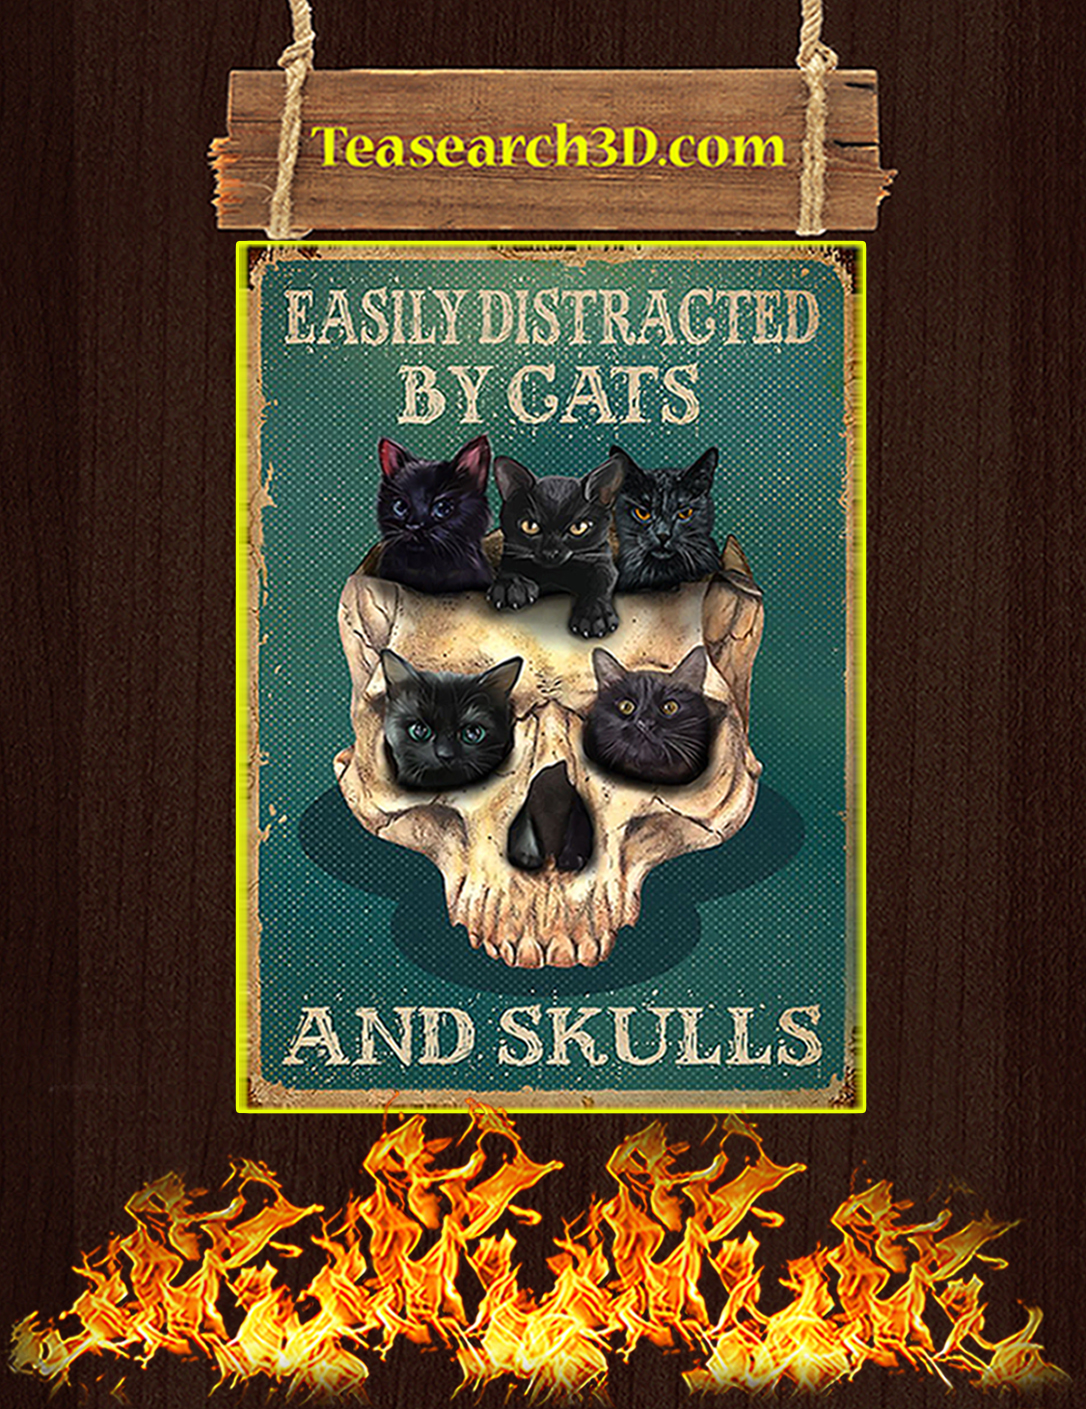 Easily distracted by cats and skulls poster A2